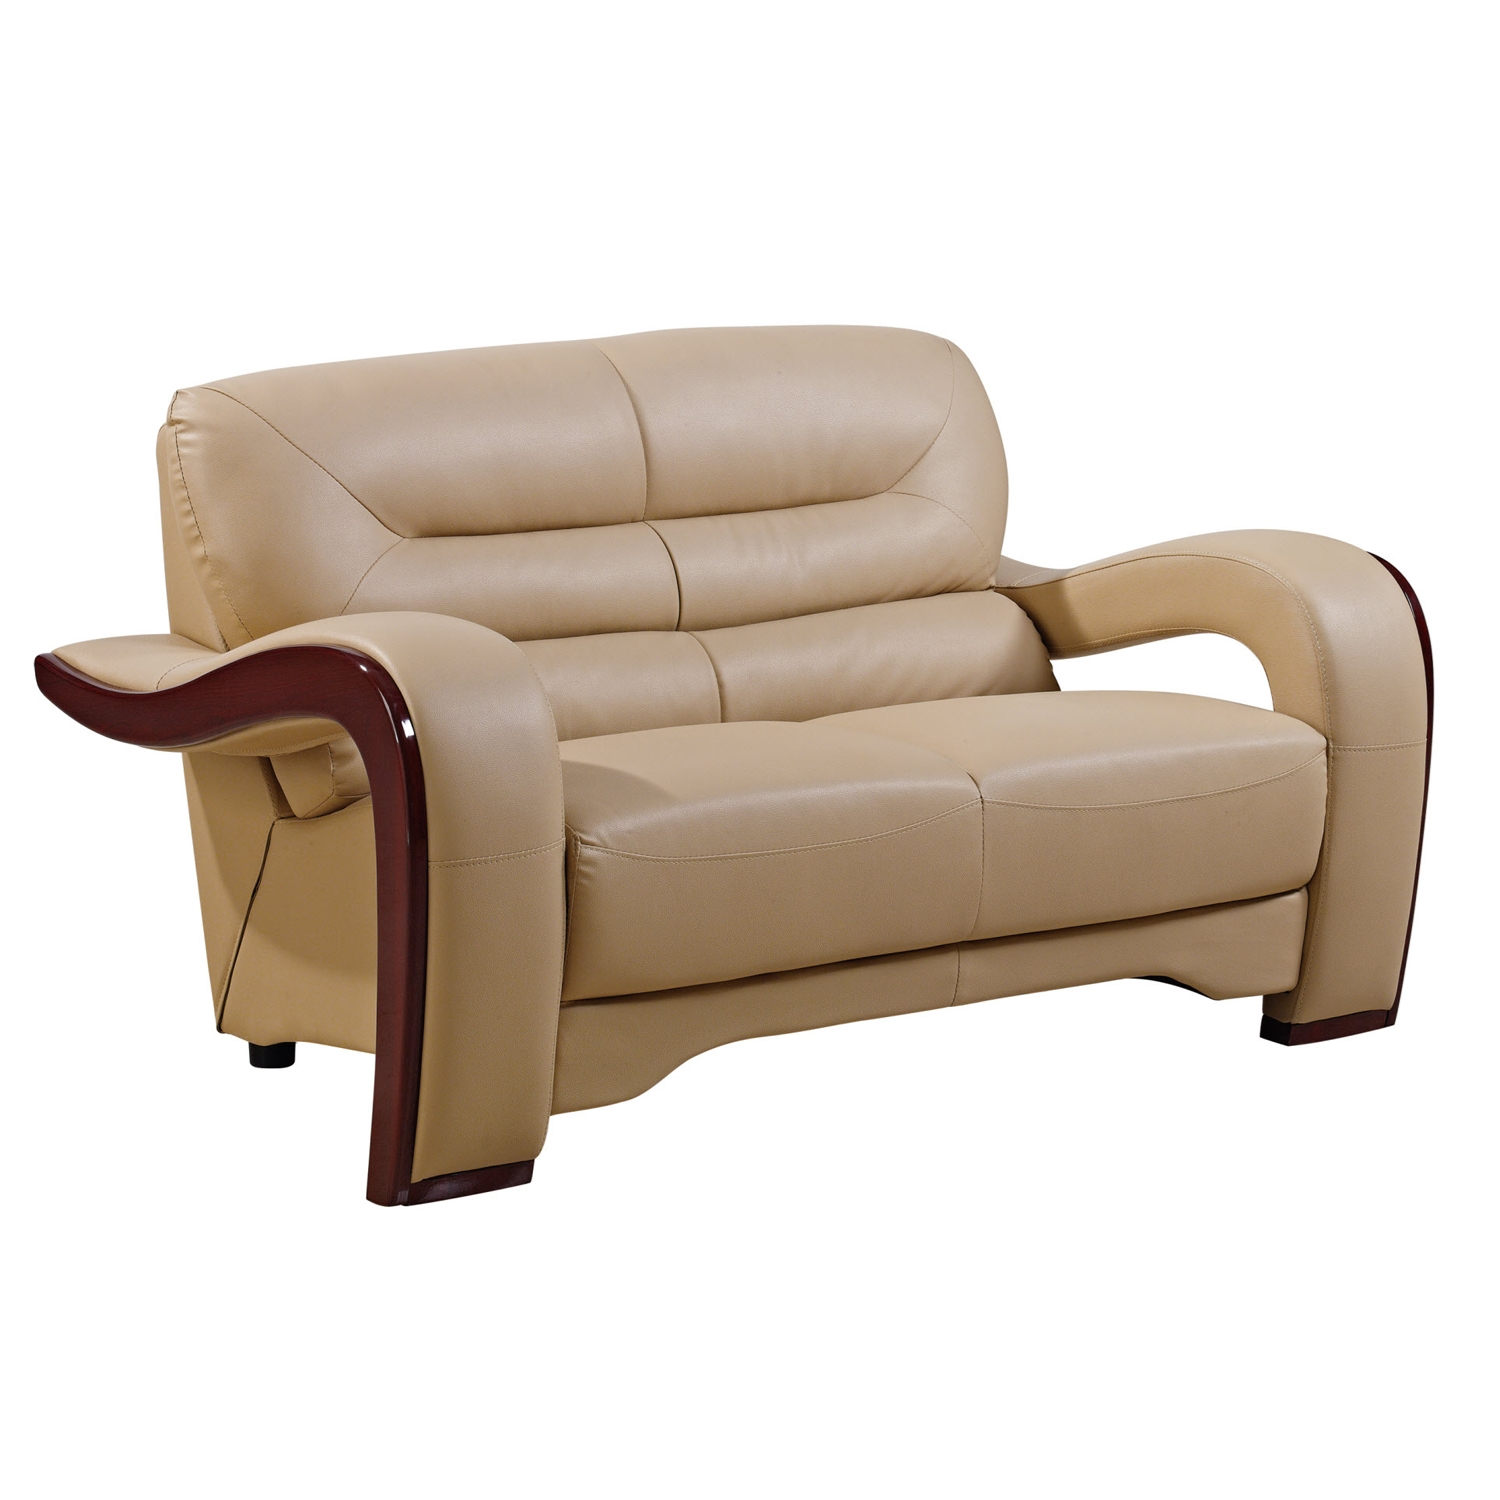 Devin Leather Loveseat - Cappuccino with Mahogany Legs